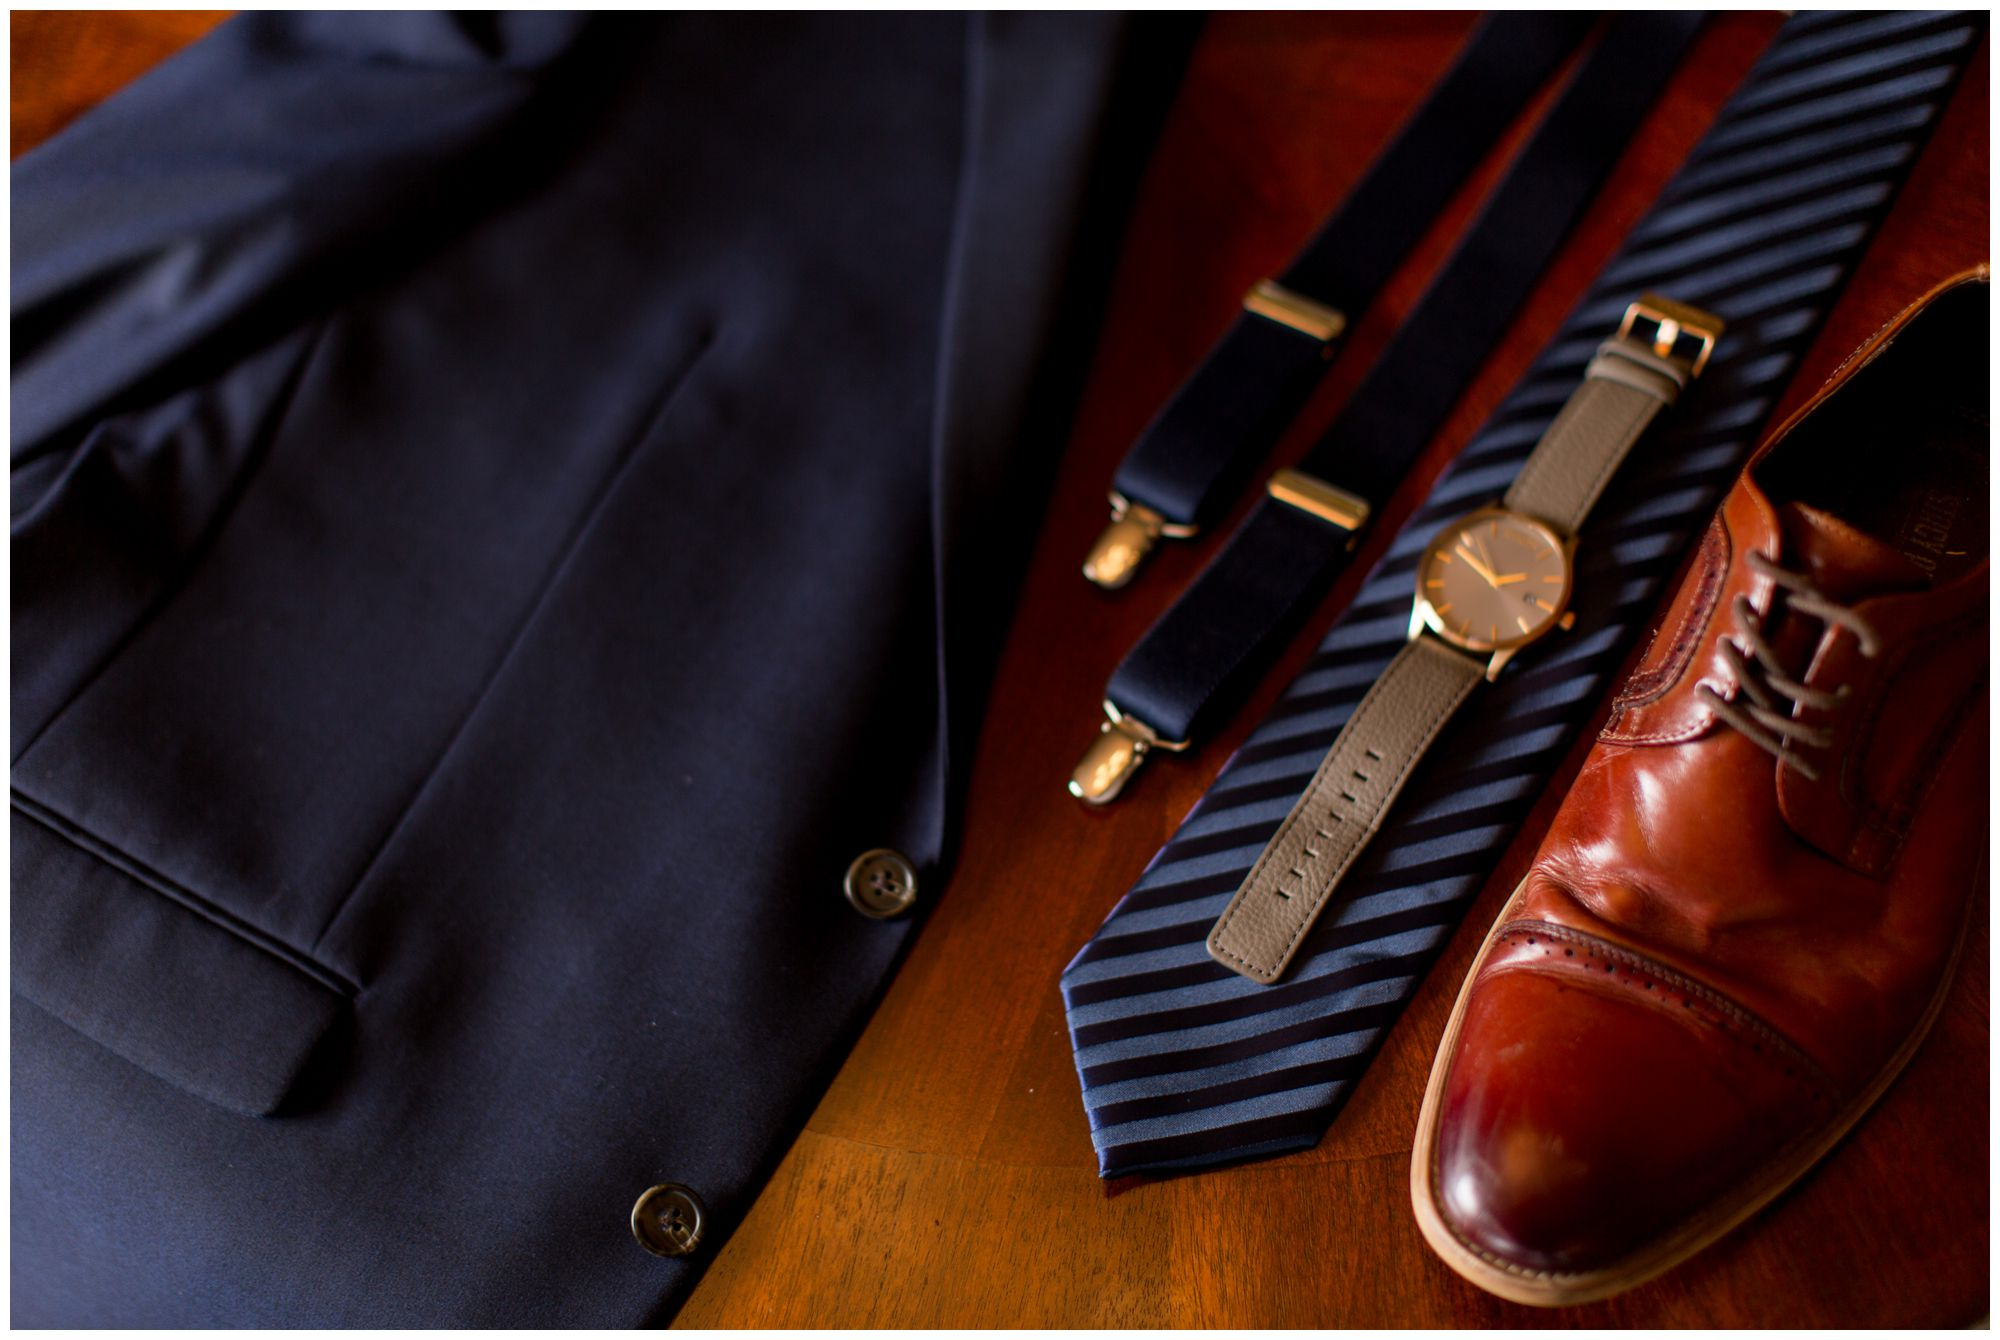 groom's suit jacket, suspenders, tie, watch and shoes at Muncie First Church of the Nazarene